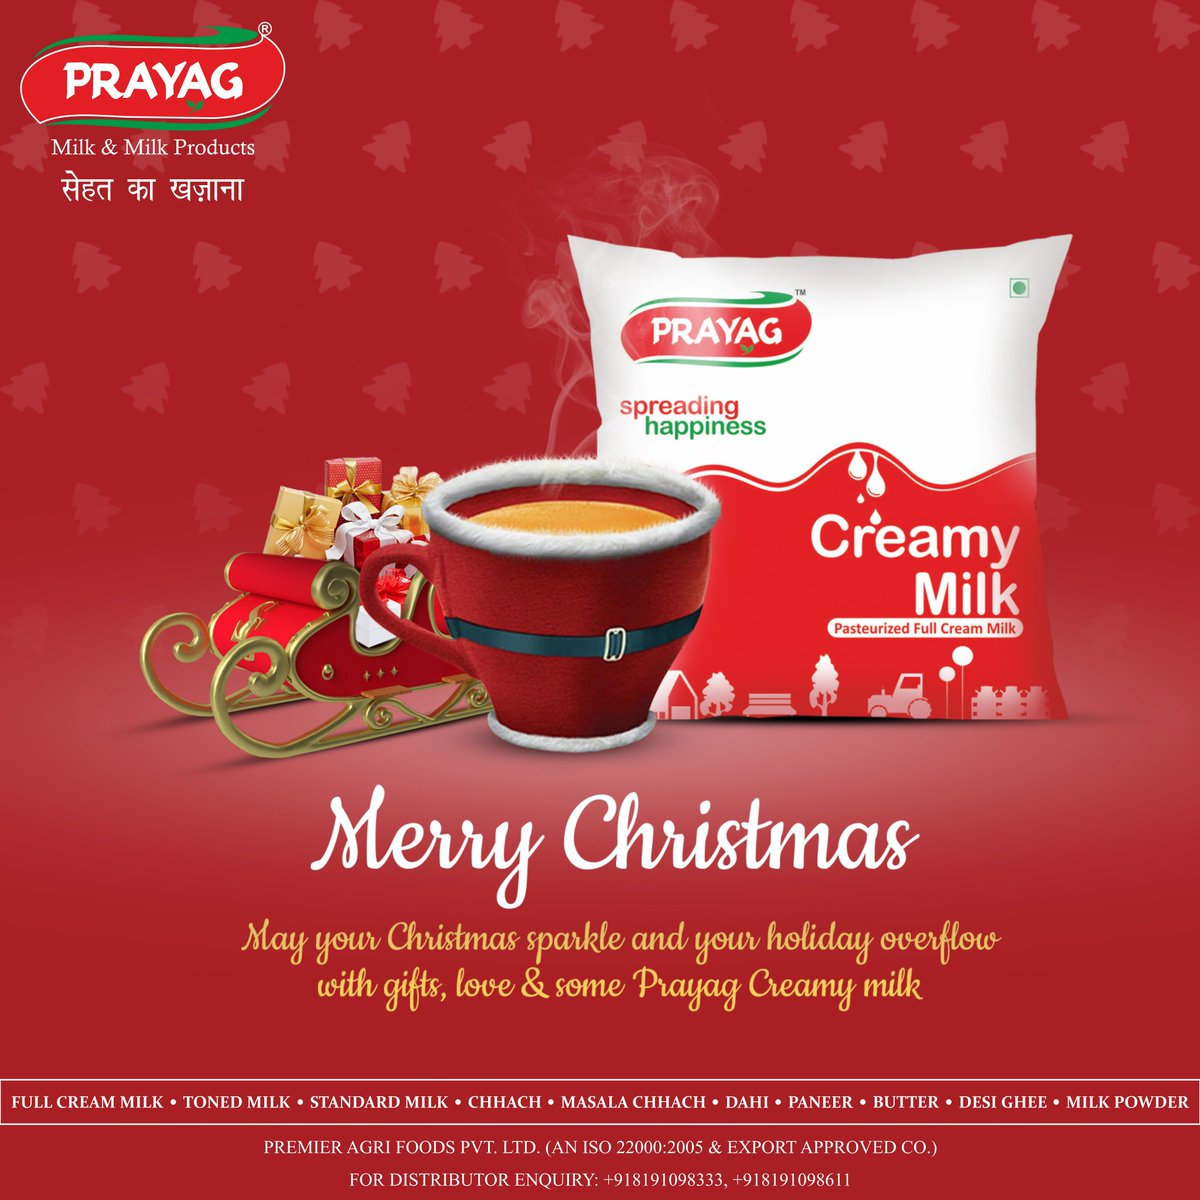 May God bless you with good health, wealth, immunity and lots of joy on the auspicious day of Christmas.  Season's Greetings and Merry Christmas to all from Prayag Milk & Milk Products family!  #MerryChristmas #HolidaySpirit #healthynation #healthandfitness #tastyandhealthy